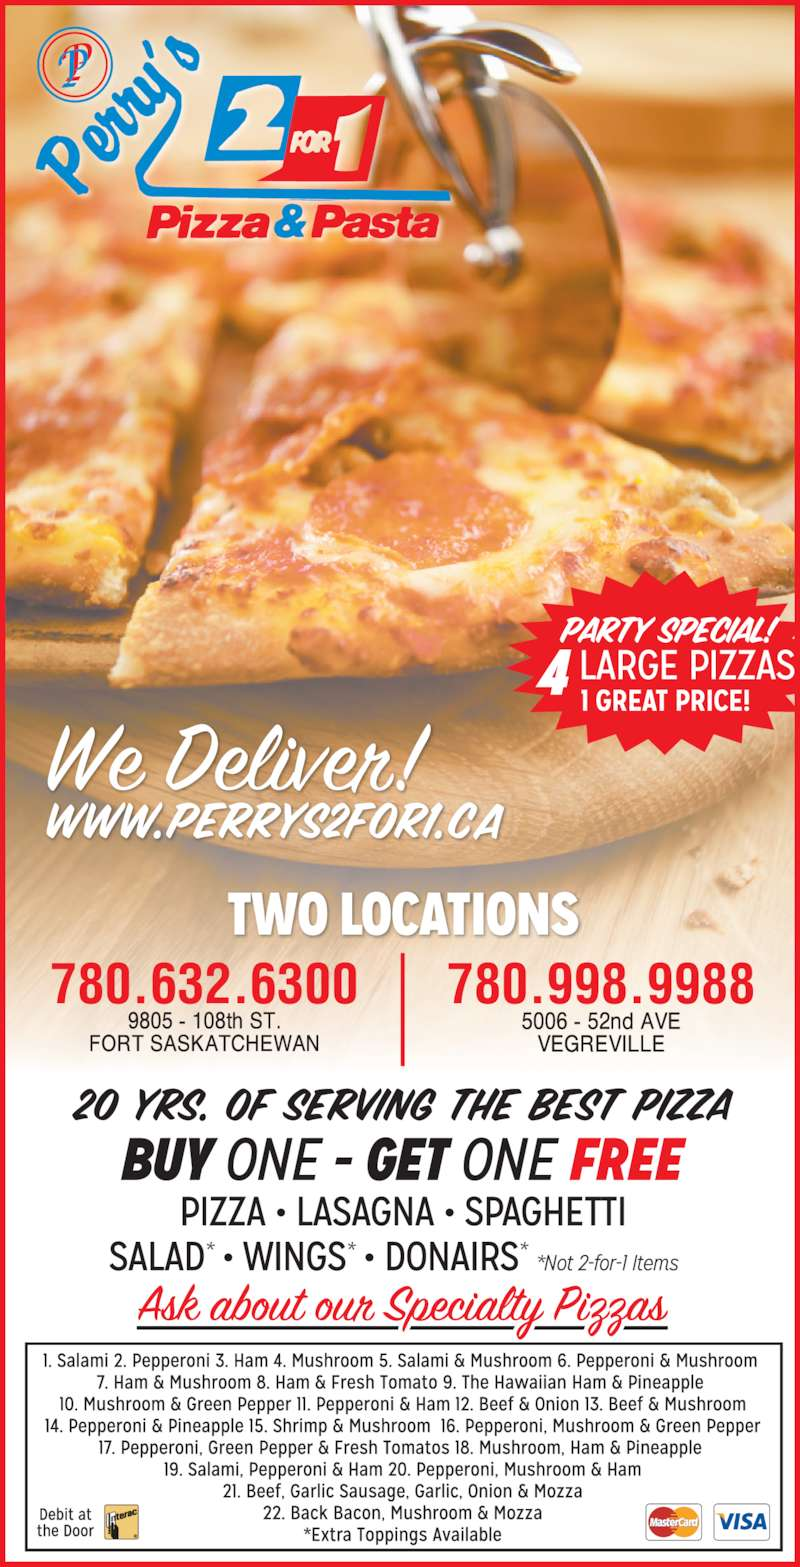 Perry's 2 For 1 Pizza & Pasta (7809989988) - Display Ad - 780.998.9988780.632.6300